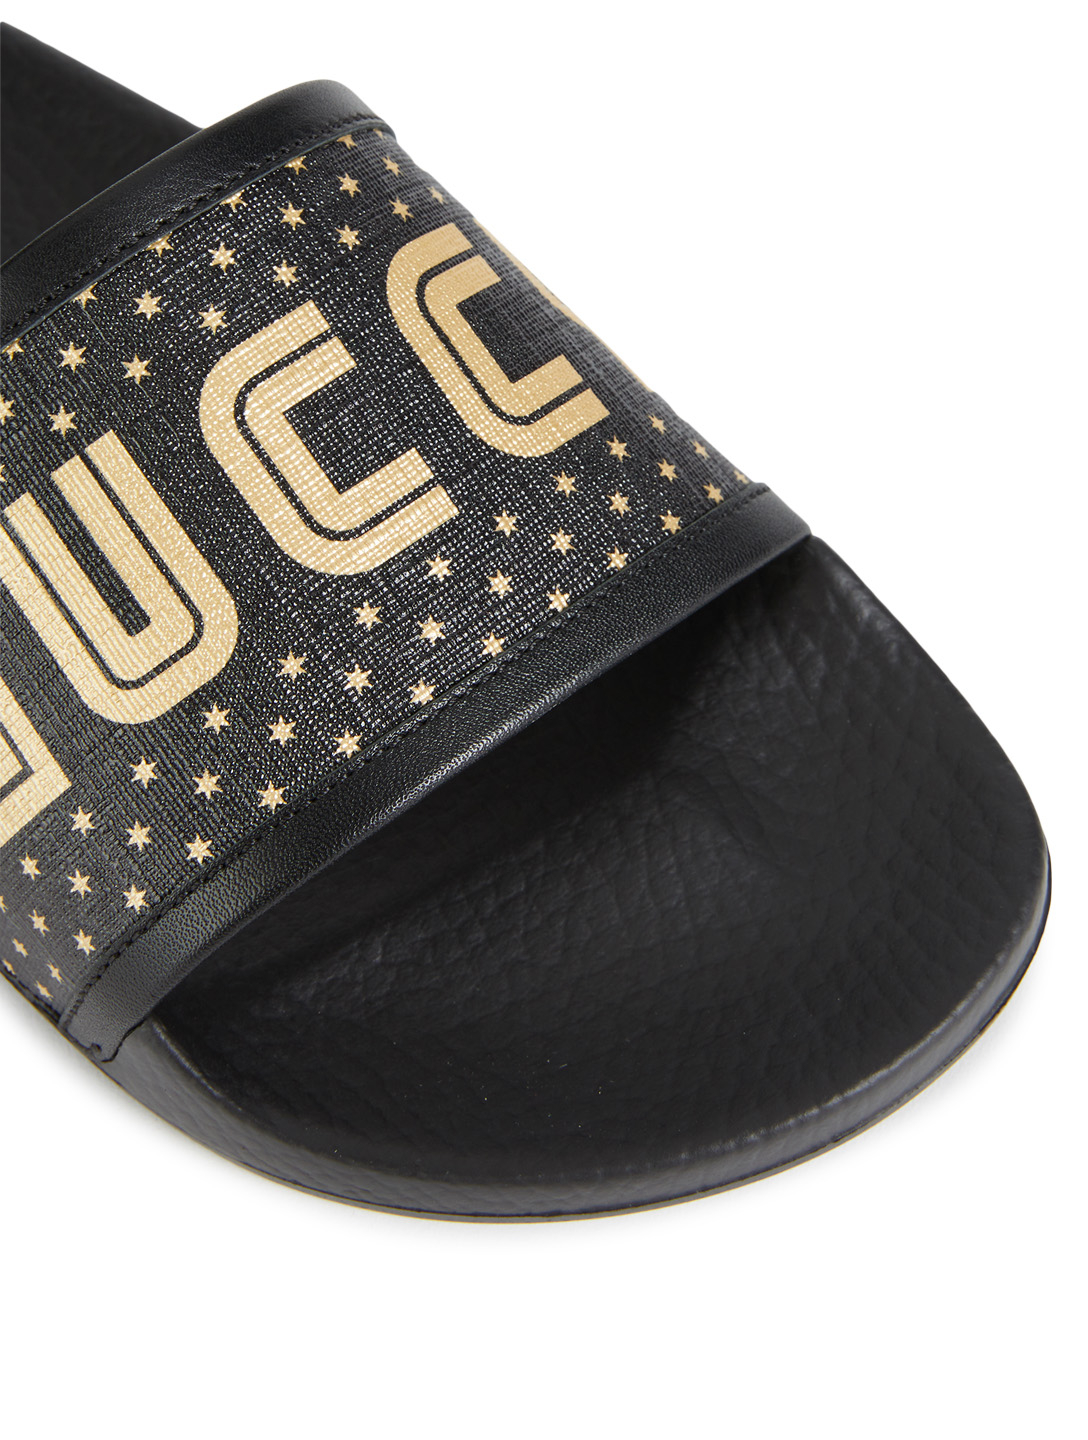 GUCCI Pursuit Pool Slides With Guccy Strap Men's Black